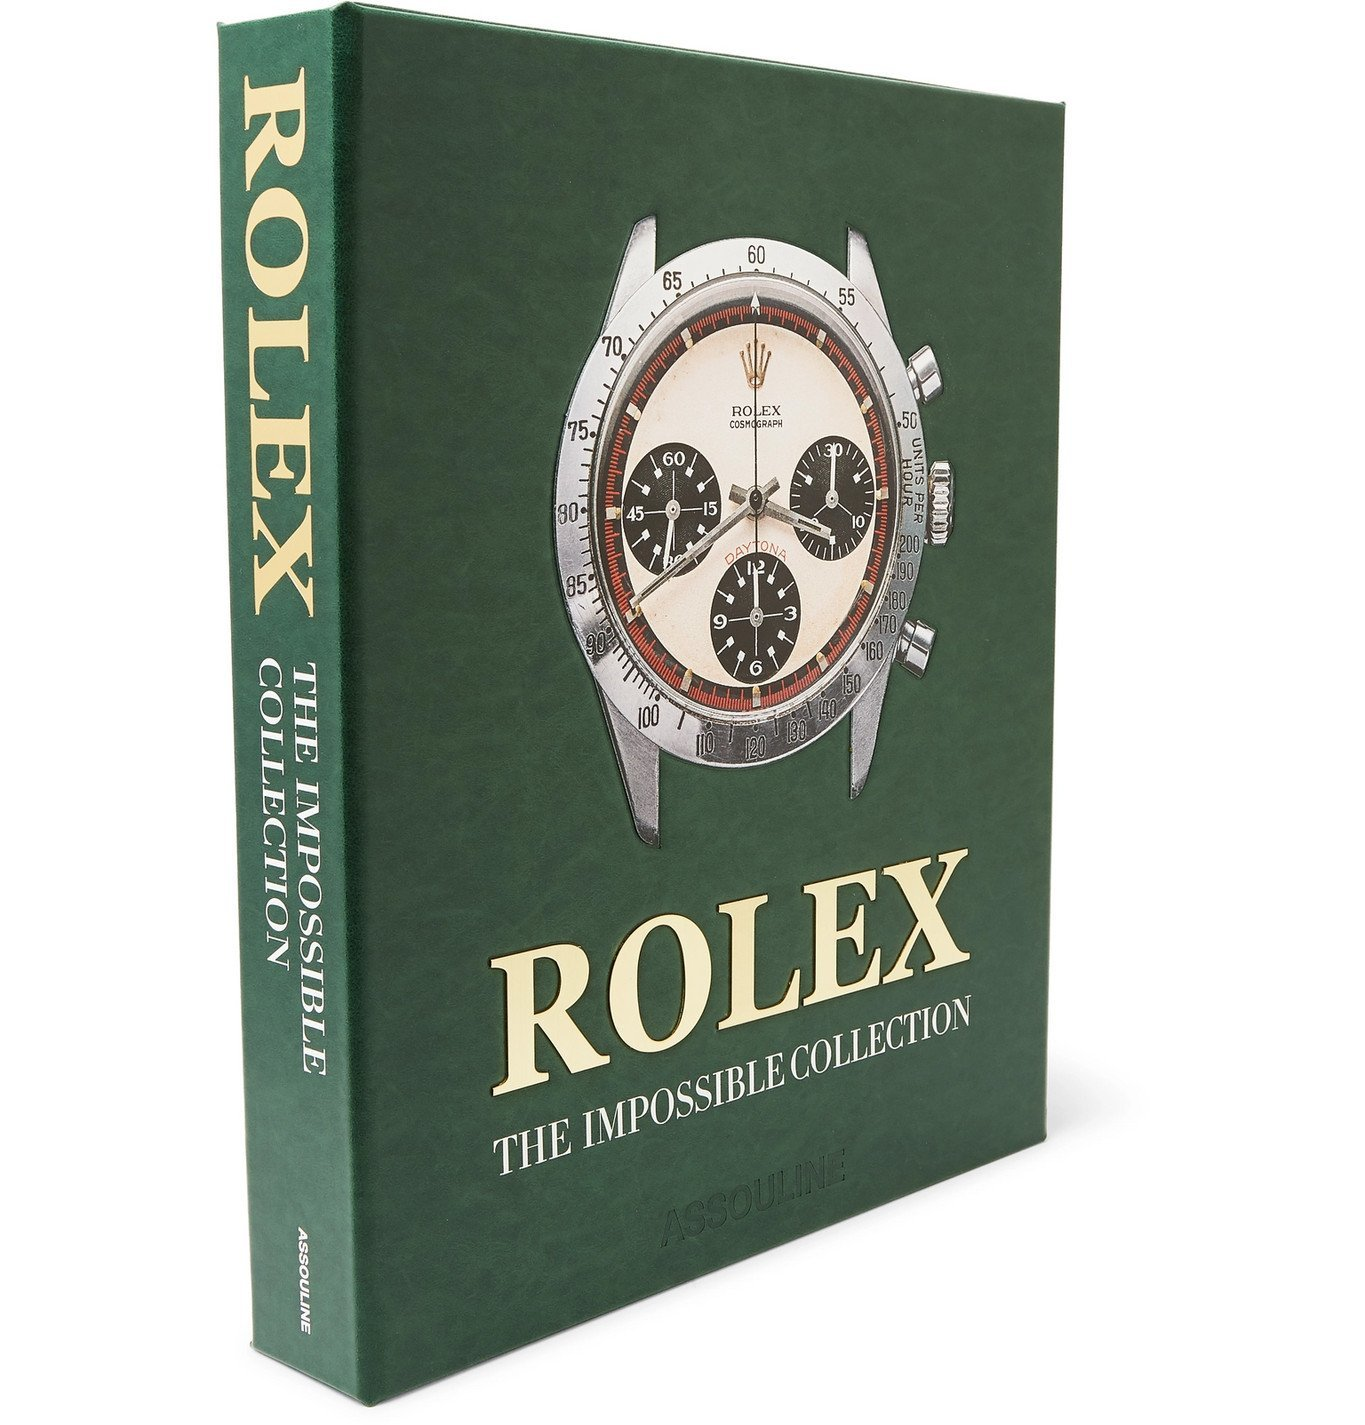 Photo: Assouline - Rolex: The Impossible Collection Hardcover Book - Green